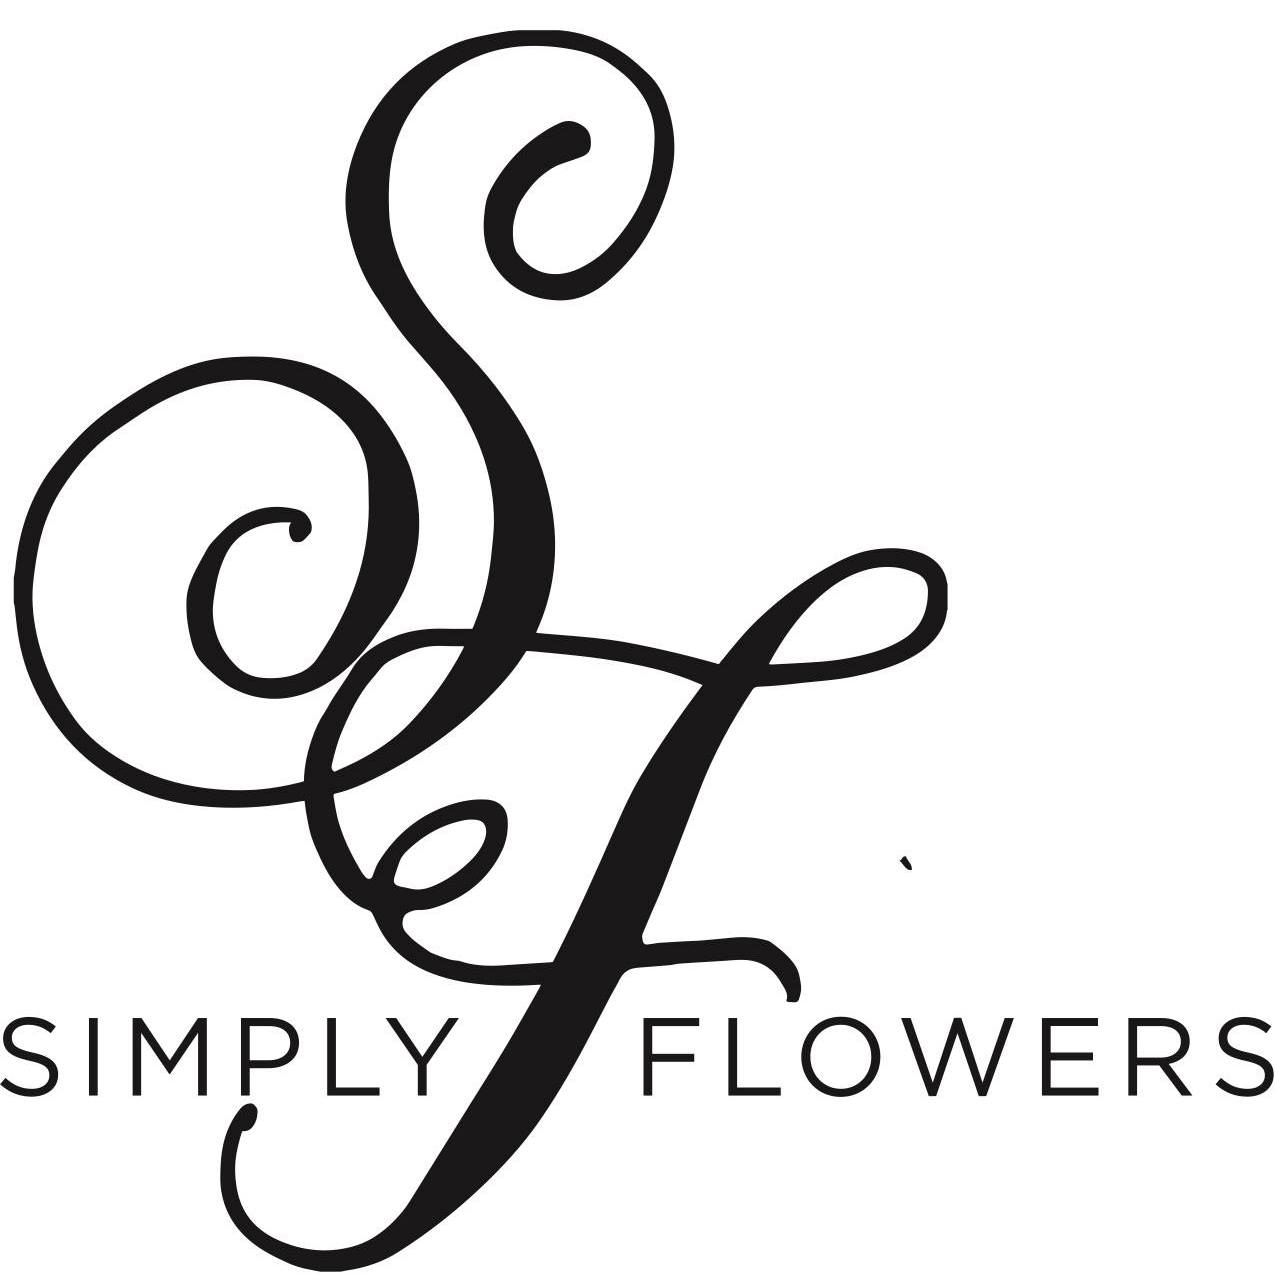 Lavish Beauty CEO Summit - Simply Flowers